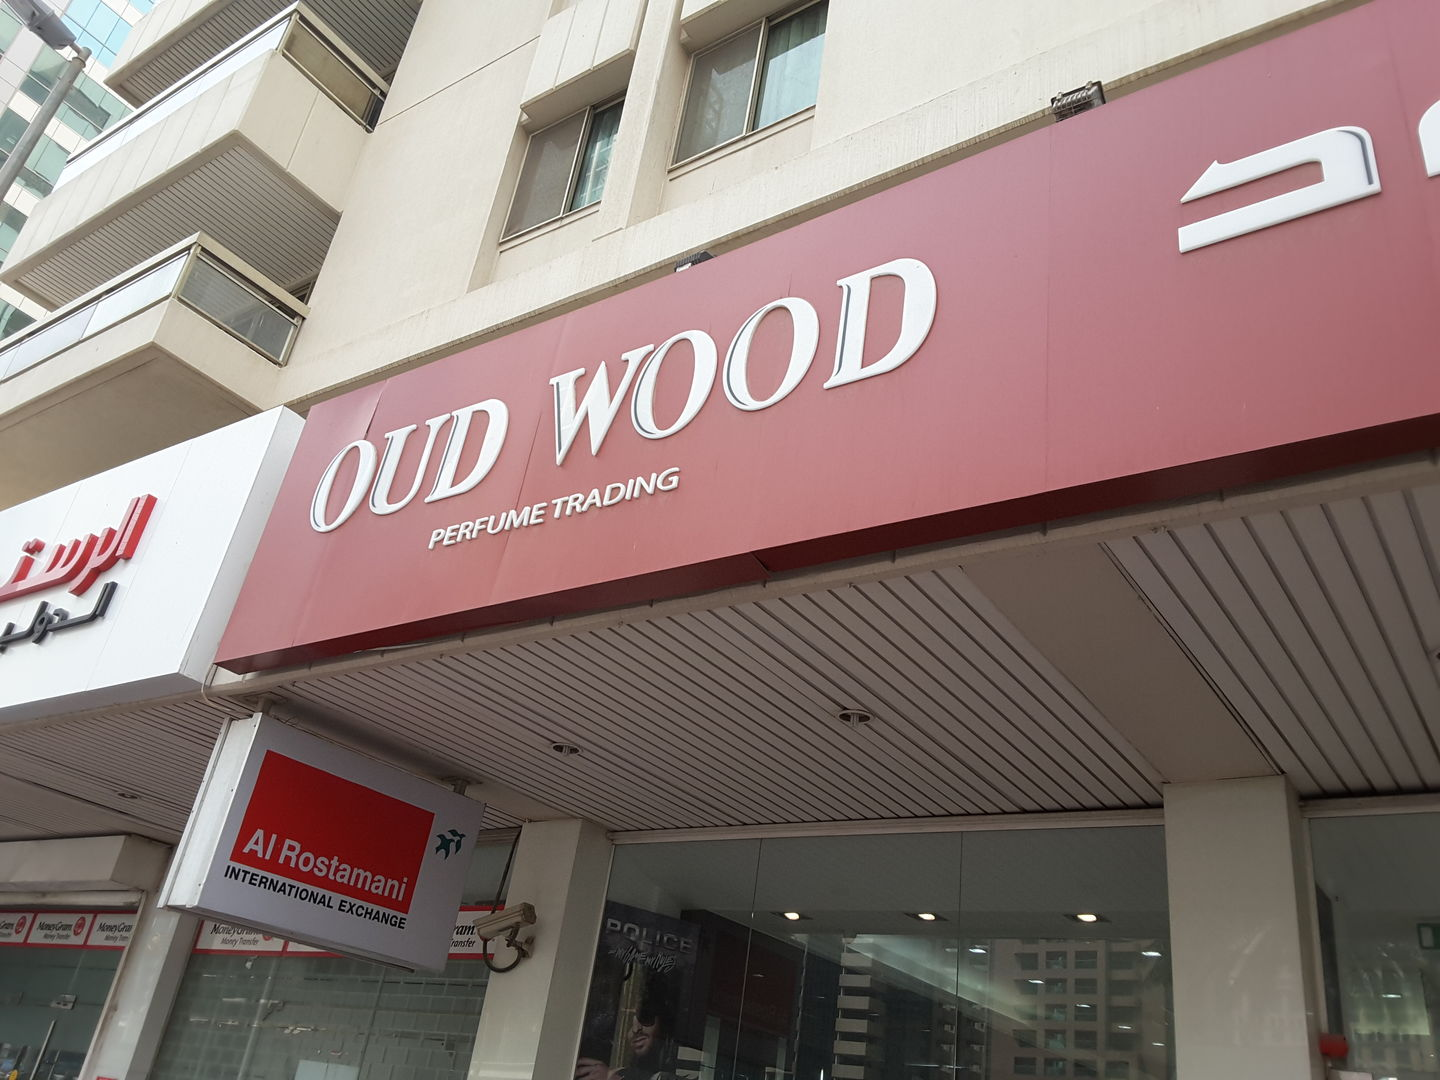 HiDubai-business-oud-wood-perfume-shopping-beauty-cosmetics-stores-sheikh-zayed-road-2-trade-centre-2-dubai-2